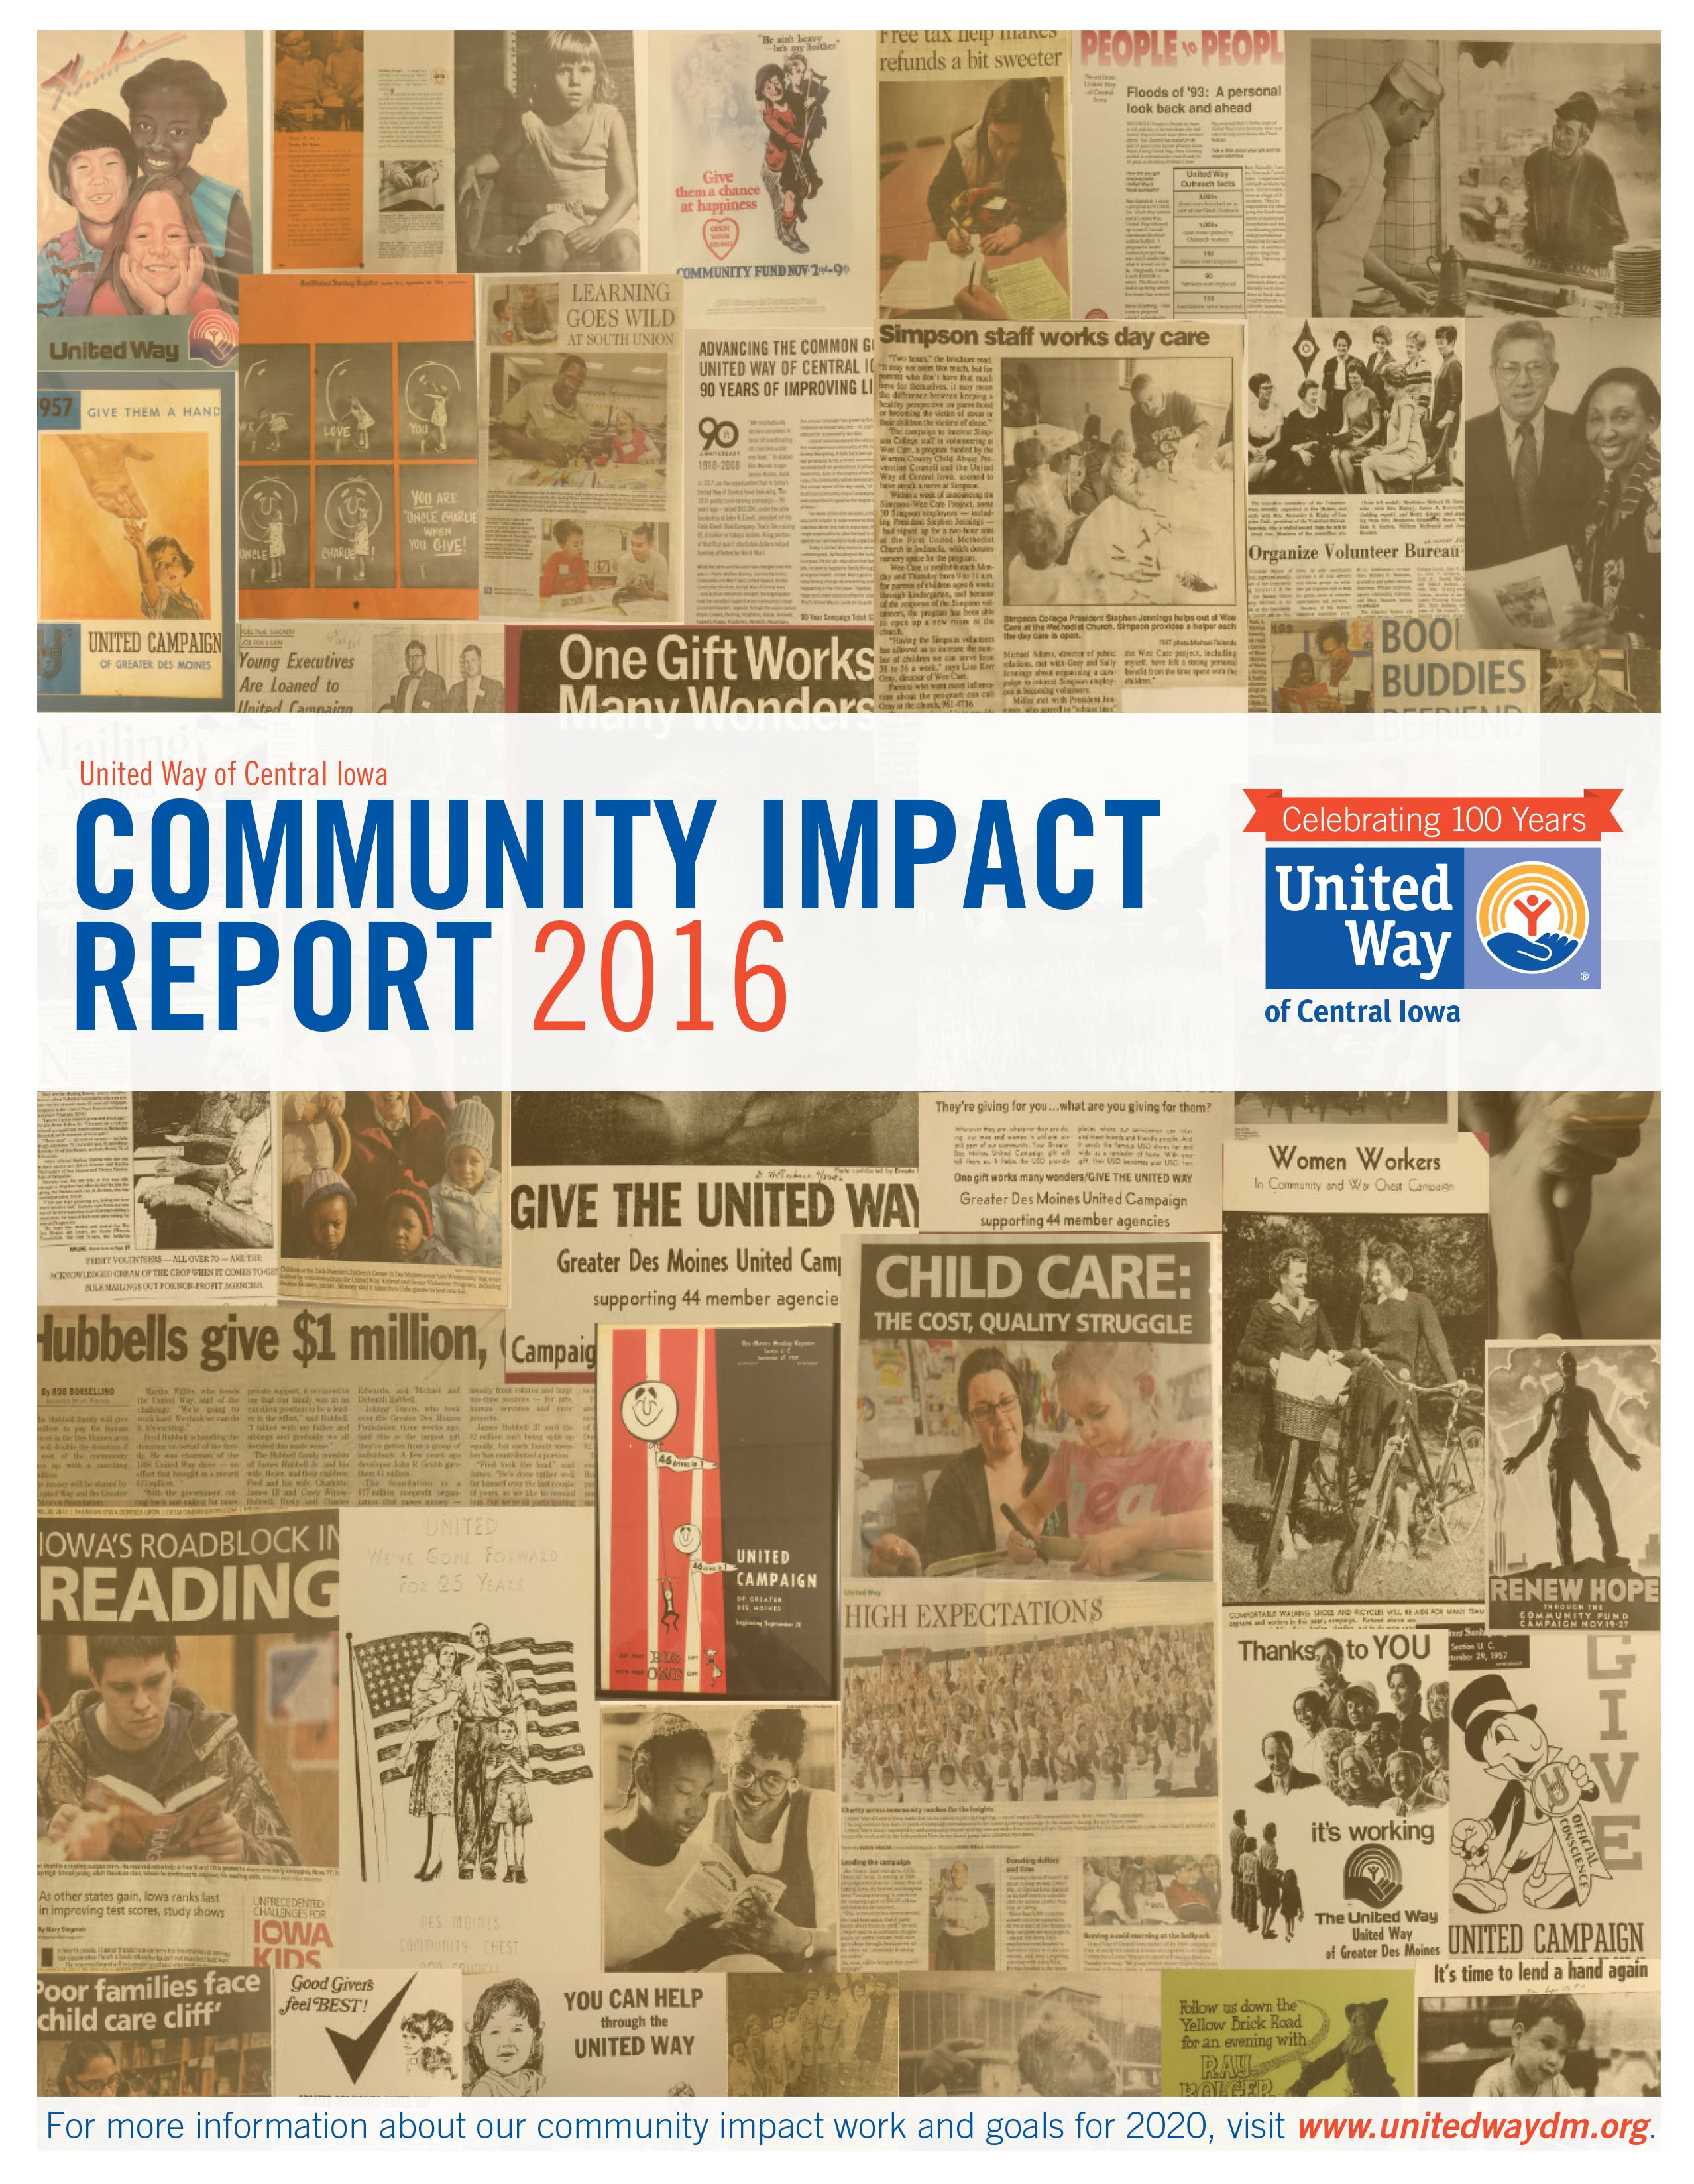 2016 Community Impact Report (click to download)